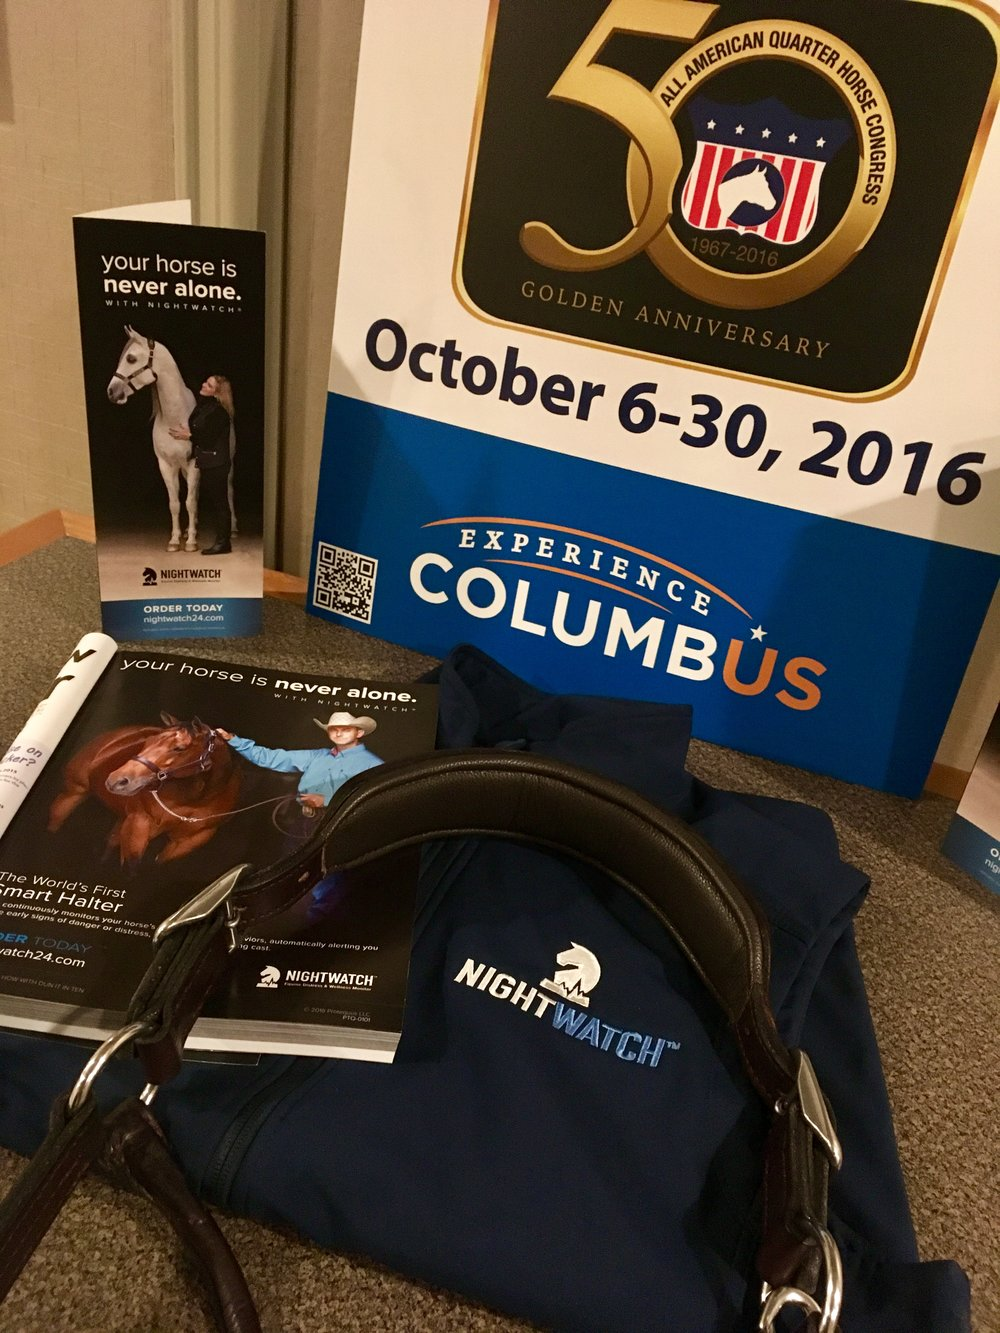 NIGHTWATCH®among the 20,000+ entries in the 50th All American Quarter Horse Congress in Columbus, Ohio.